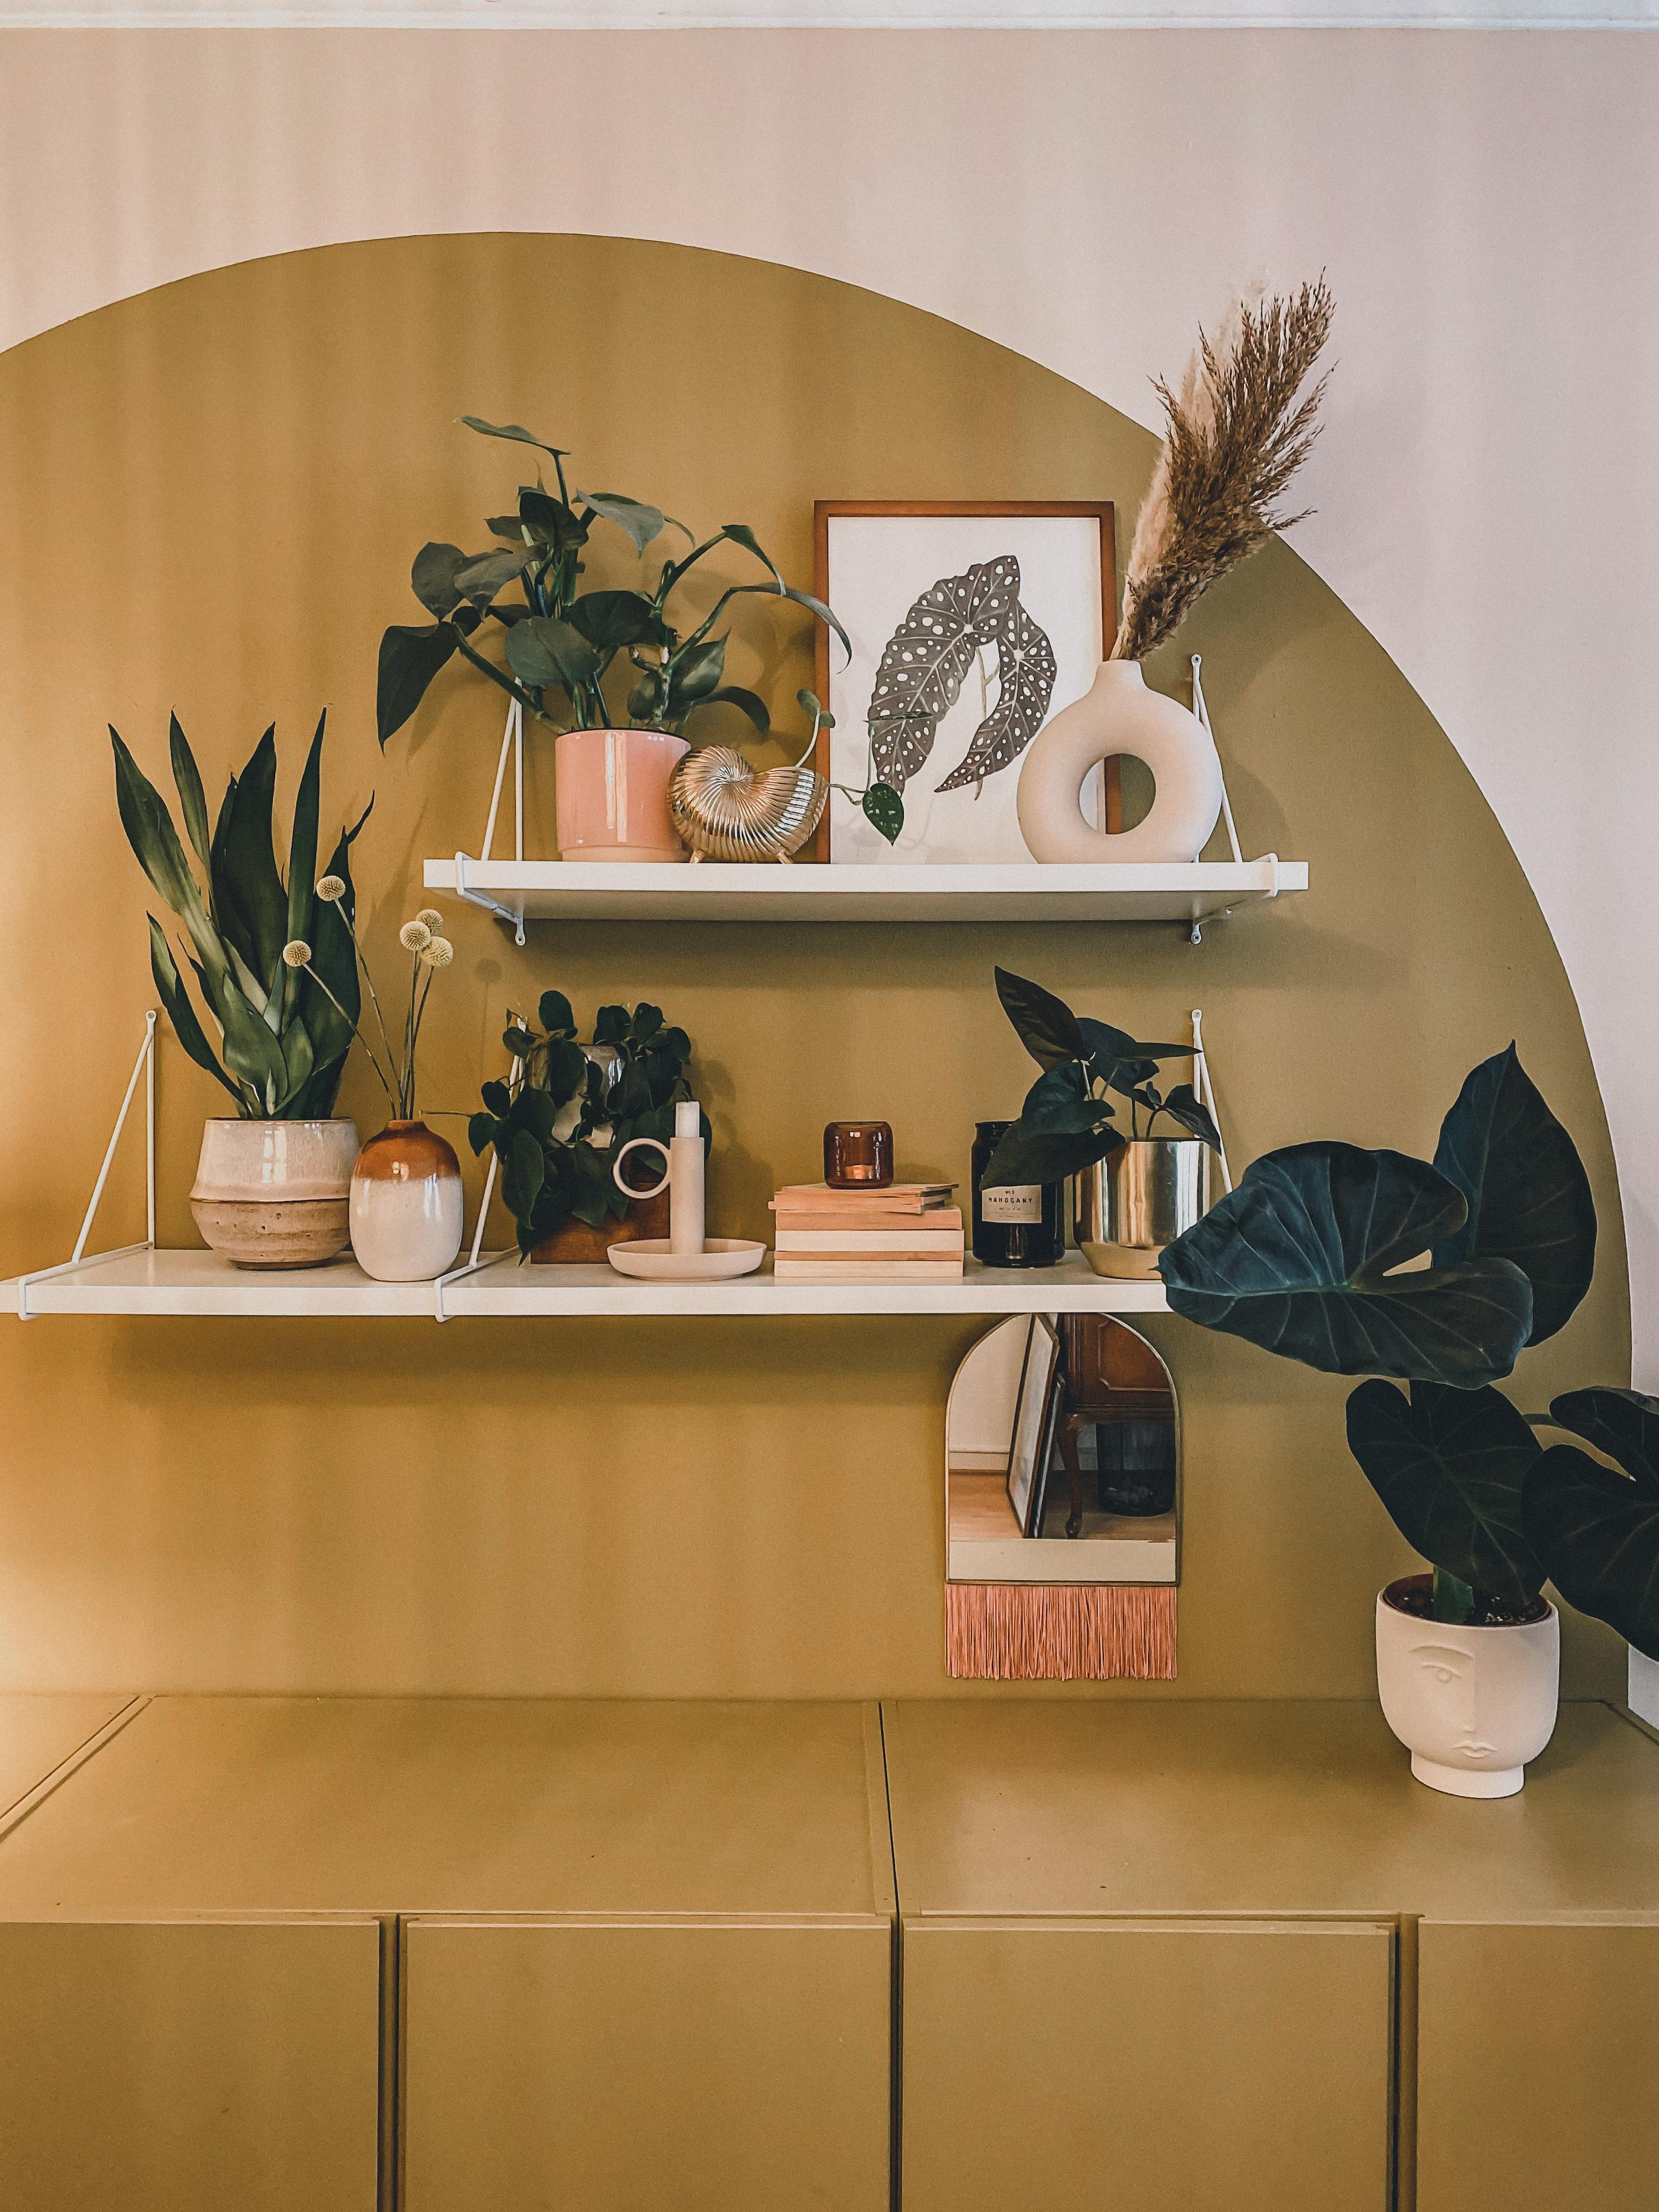 Planterior. #living #planterior #plants #decor